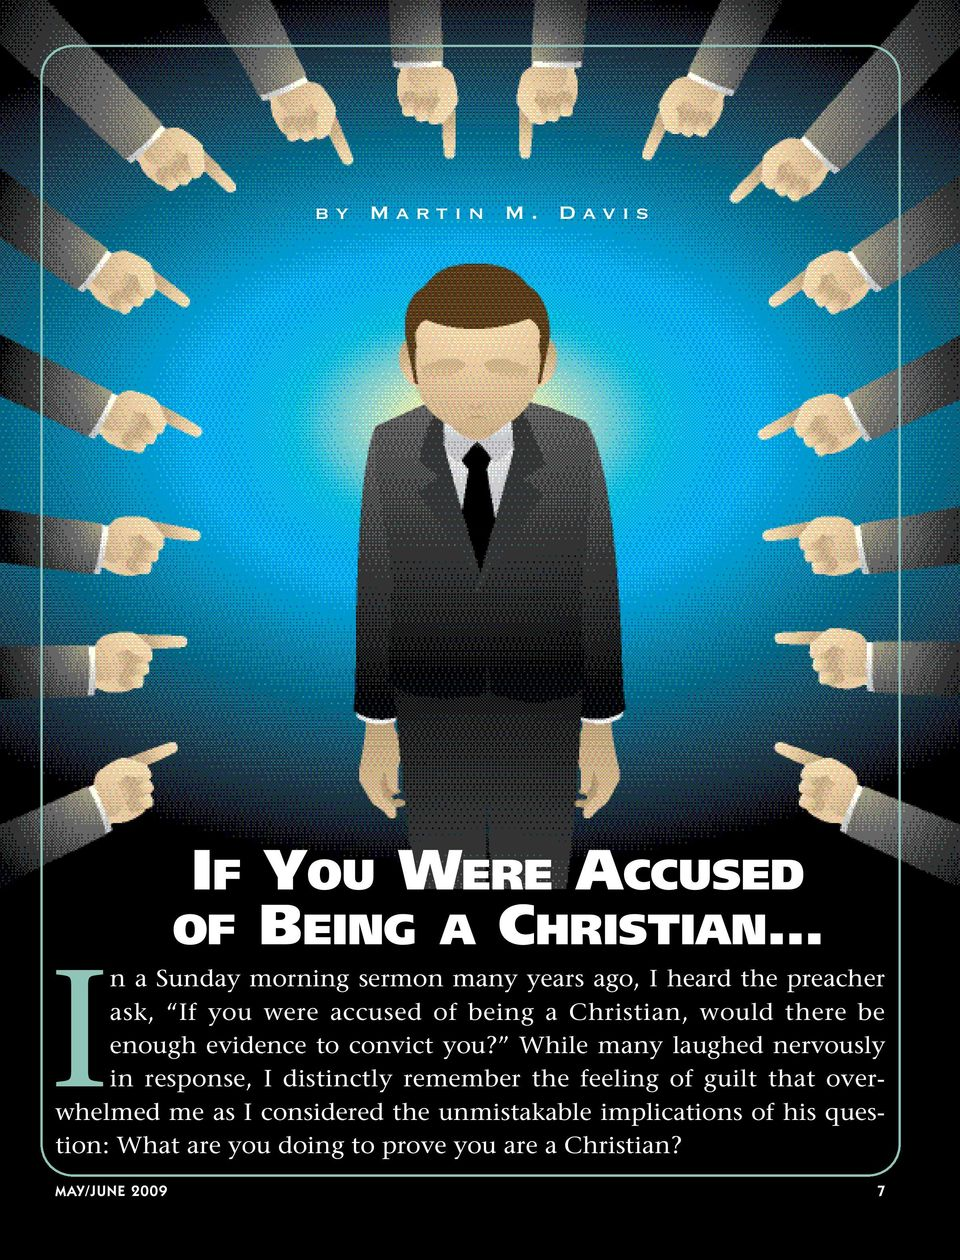 ask, If you were accused of being a Christian, would there be enough evidence to convict you?